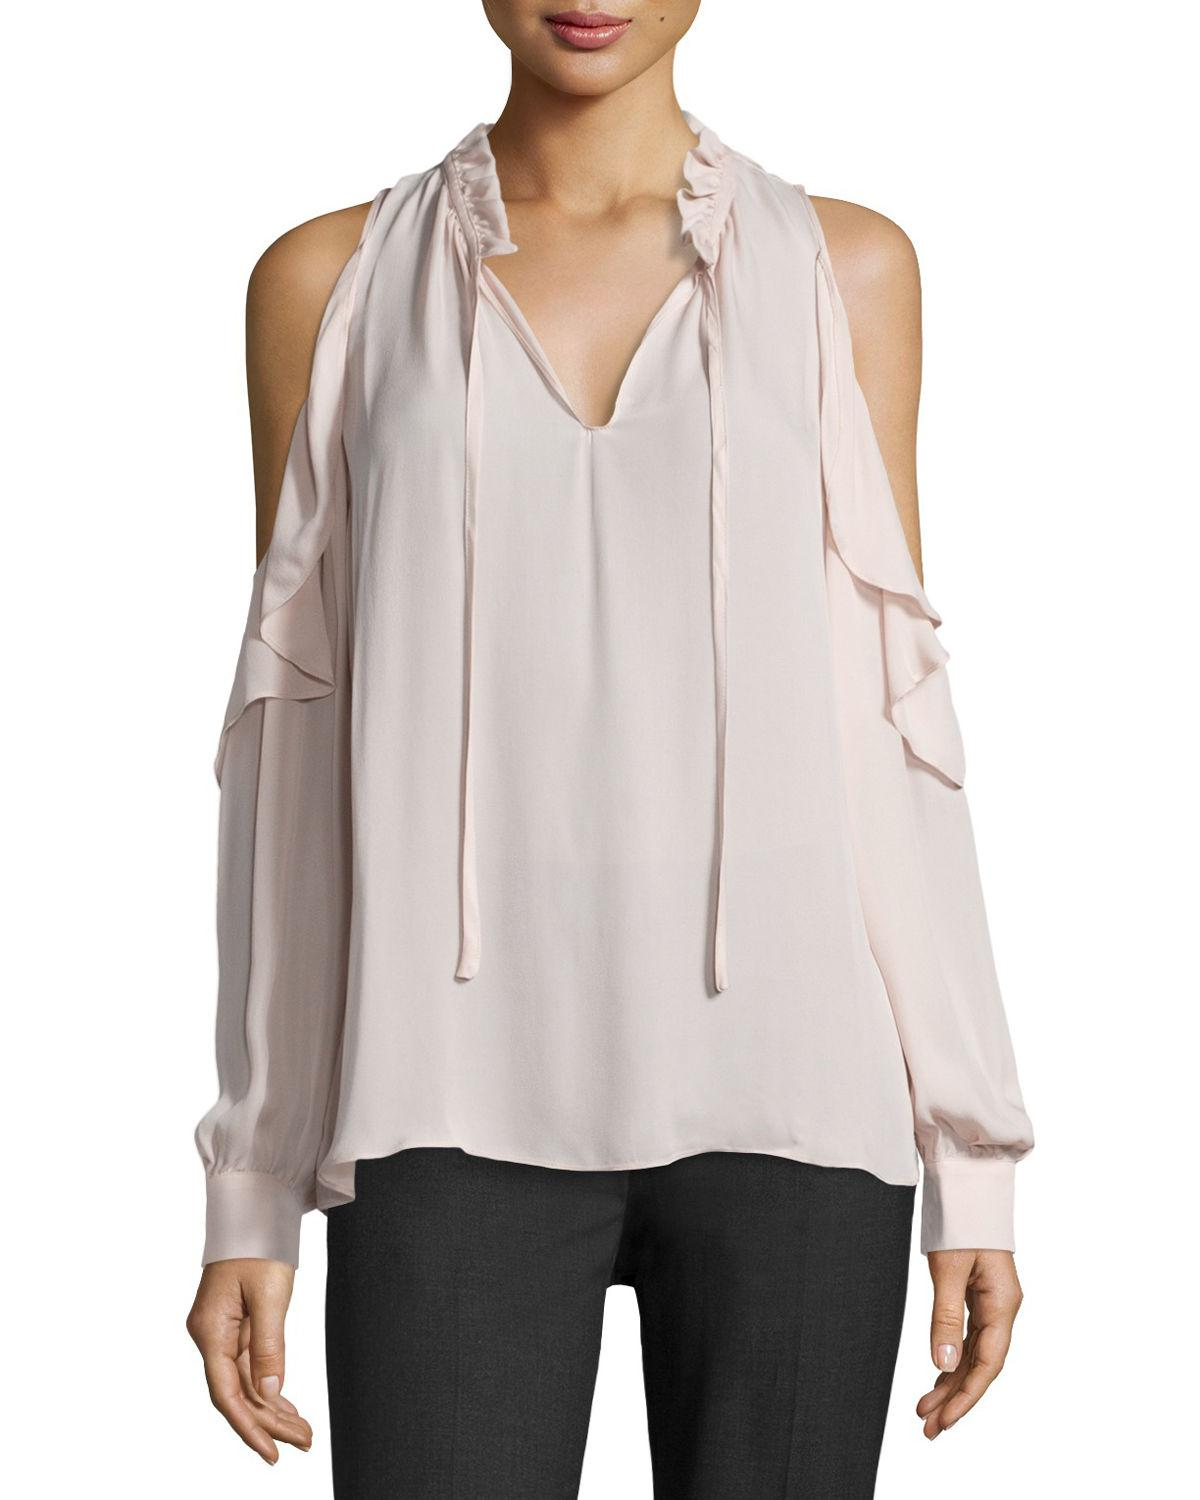 e4107d3a364d8 Gallery. Previously sold at  Neiman Marcus · Women s Fleece Tops Women s  Cold Shoulder Blouses ...